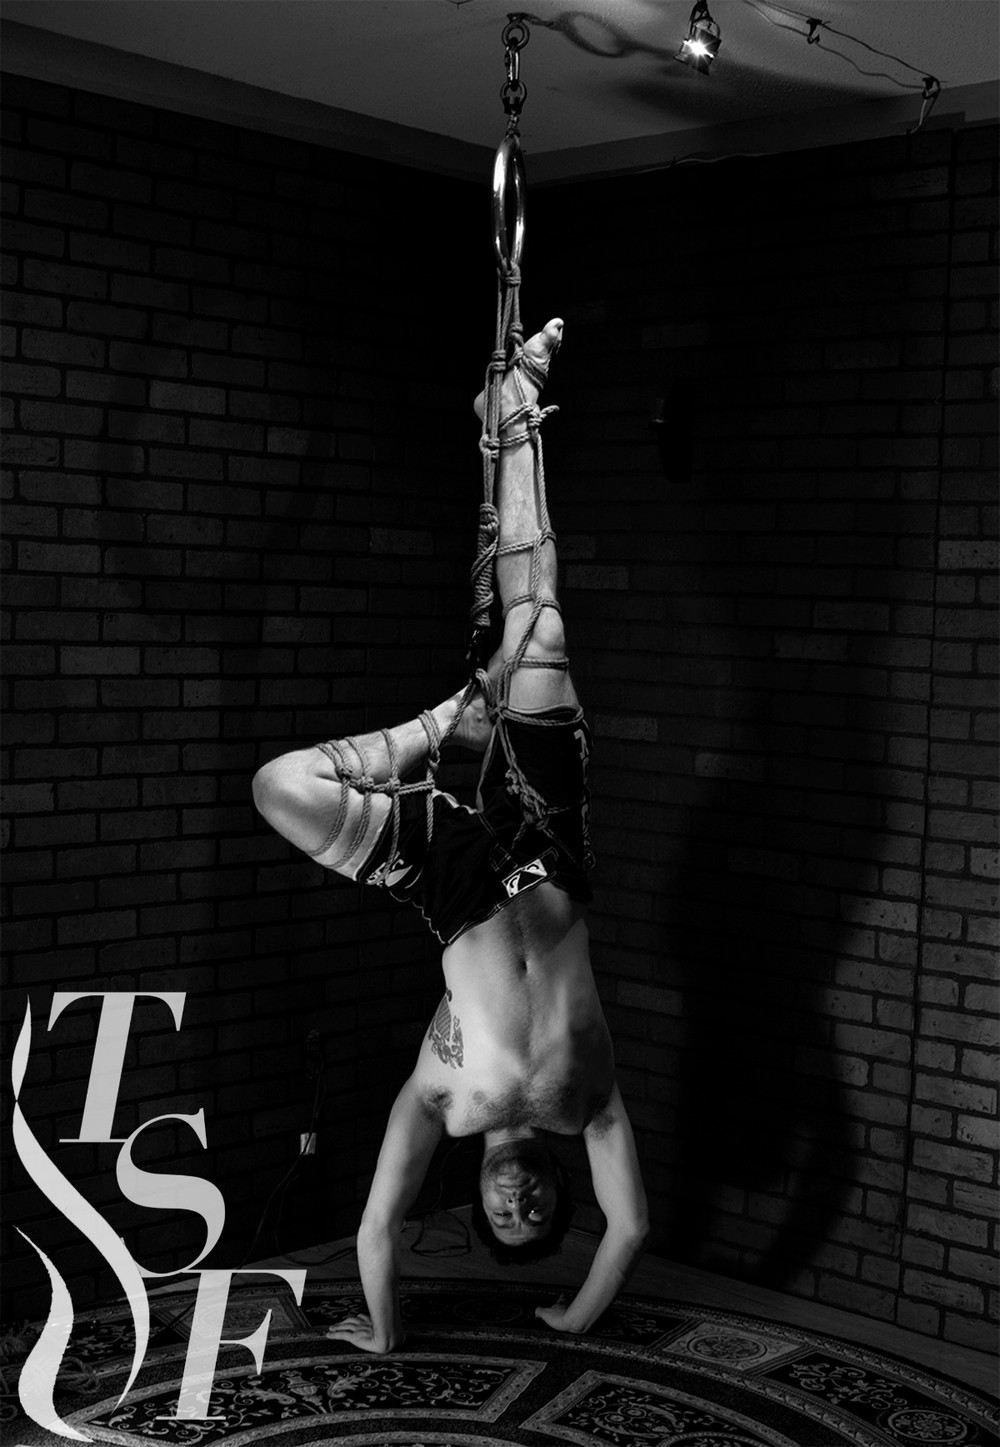 Rheb is being suspended by our jute rope. Lookin' good, sir!   Disclaimer: While this looks super amazing, we advise that you do not attempt suspension without proper supervision and/or training.